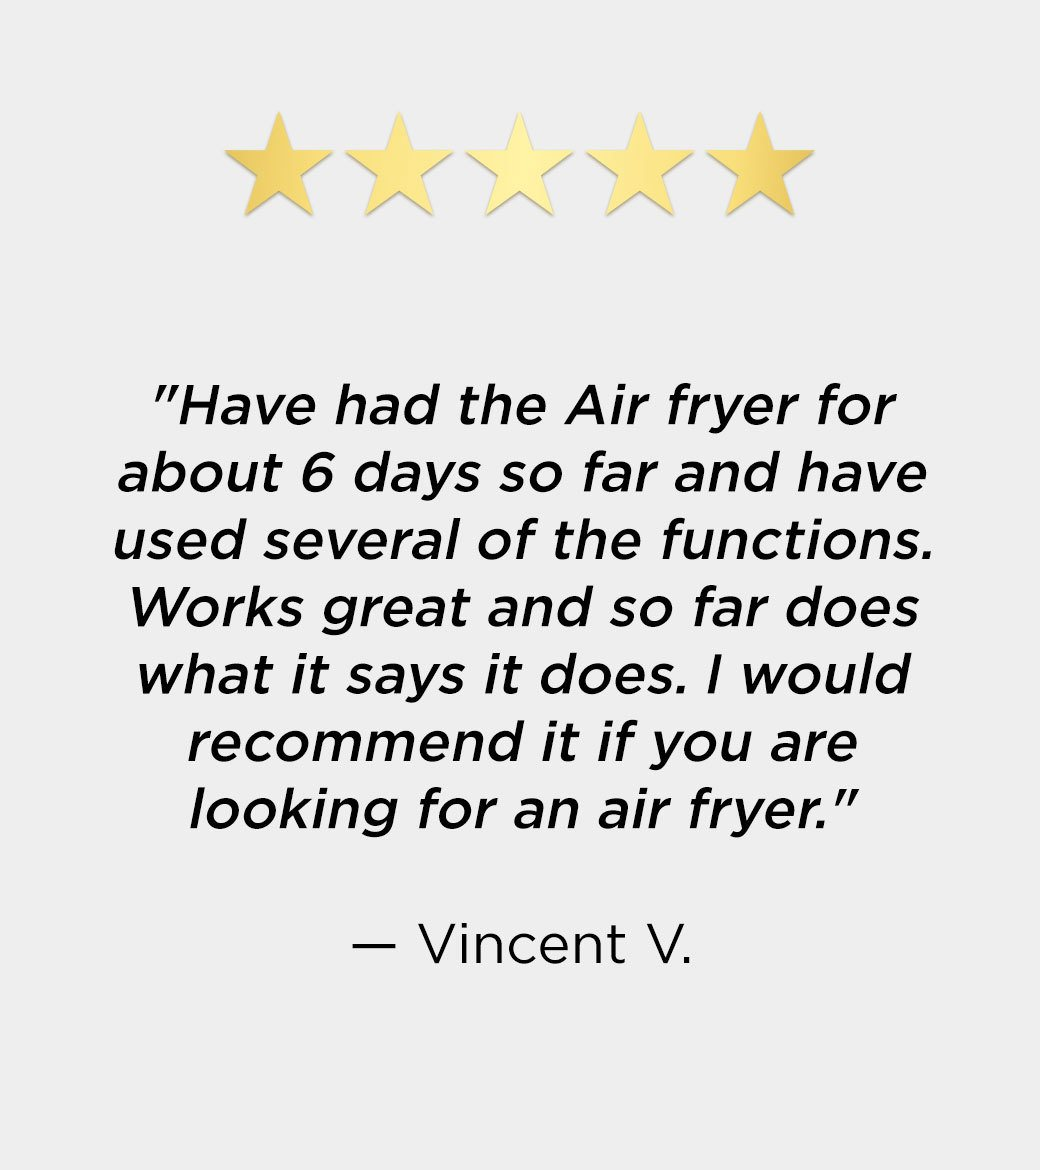 emeril air fryer review: I would recommend it if you are looking for an air fryer -Vincent V.